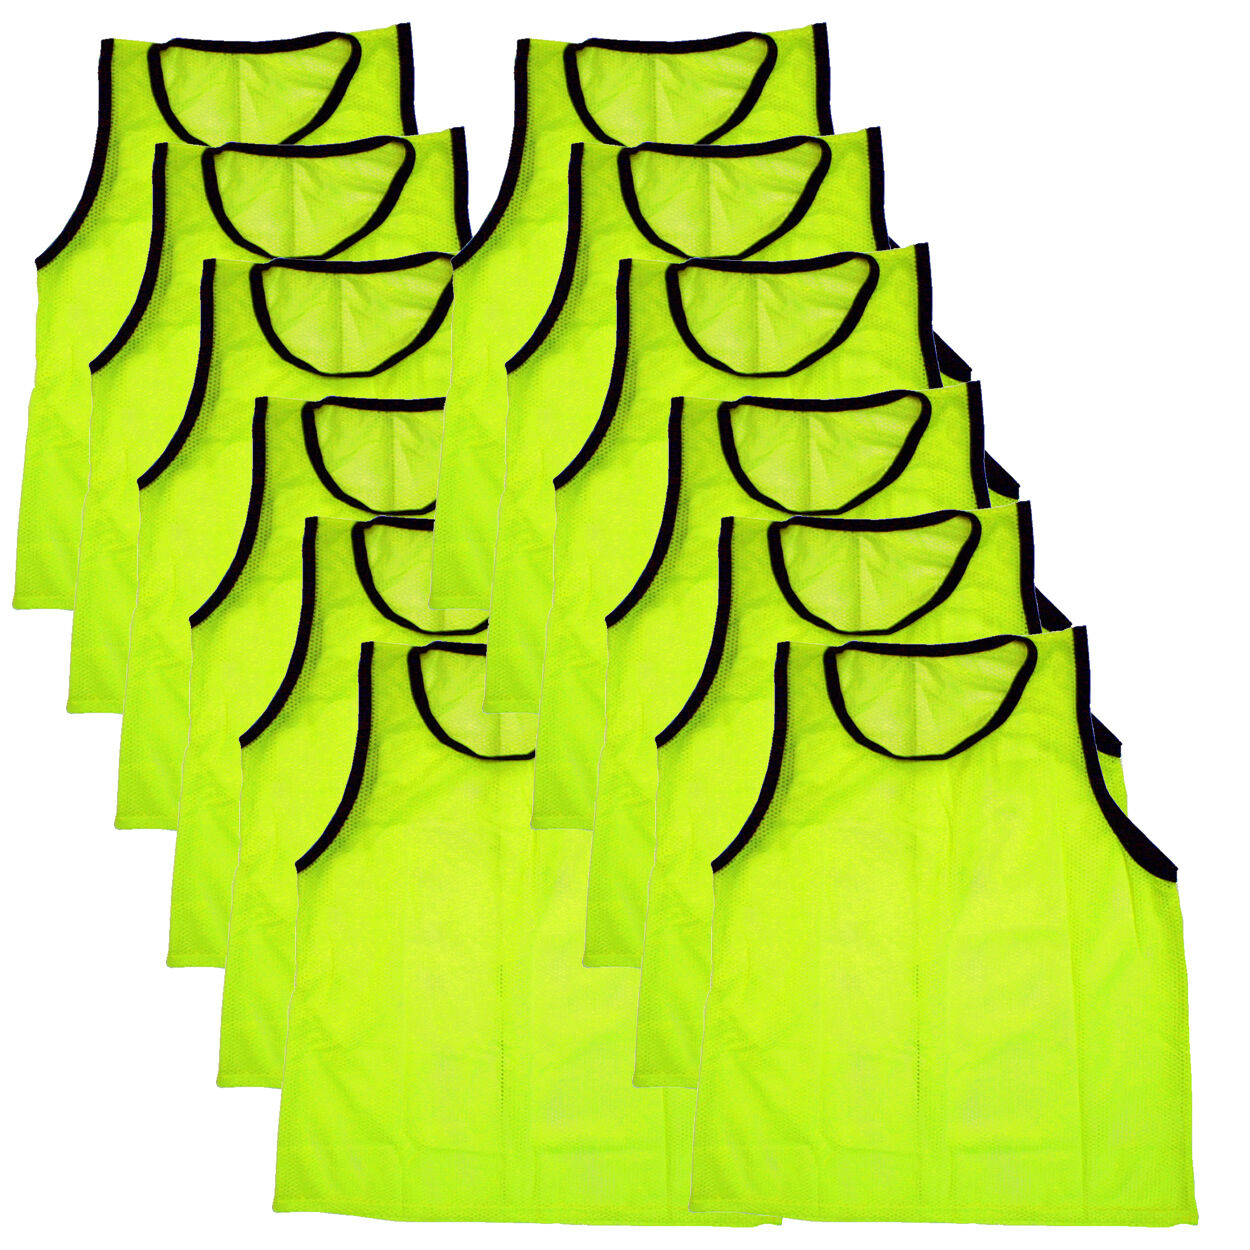 12 SCRIMMAGE VESTS PINNIES SOCCER YOUTH YELLOW ~ NEW!